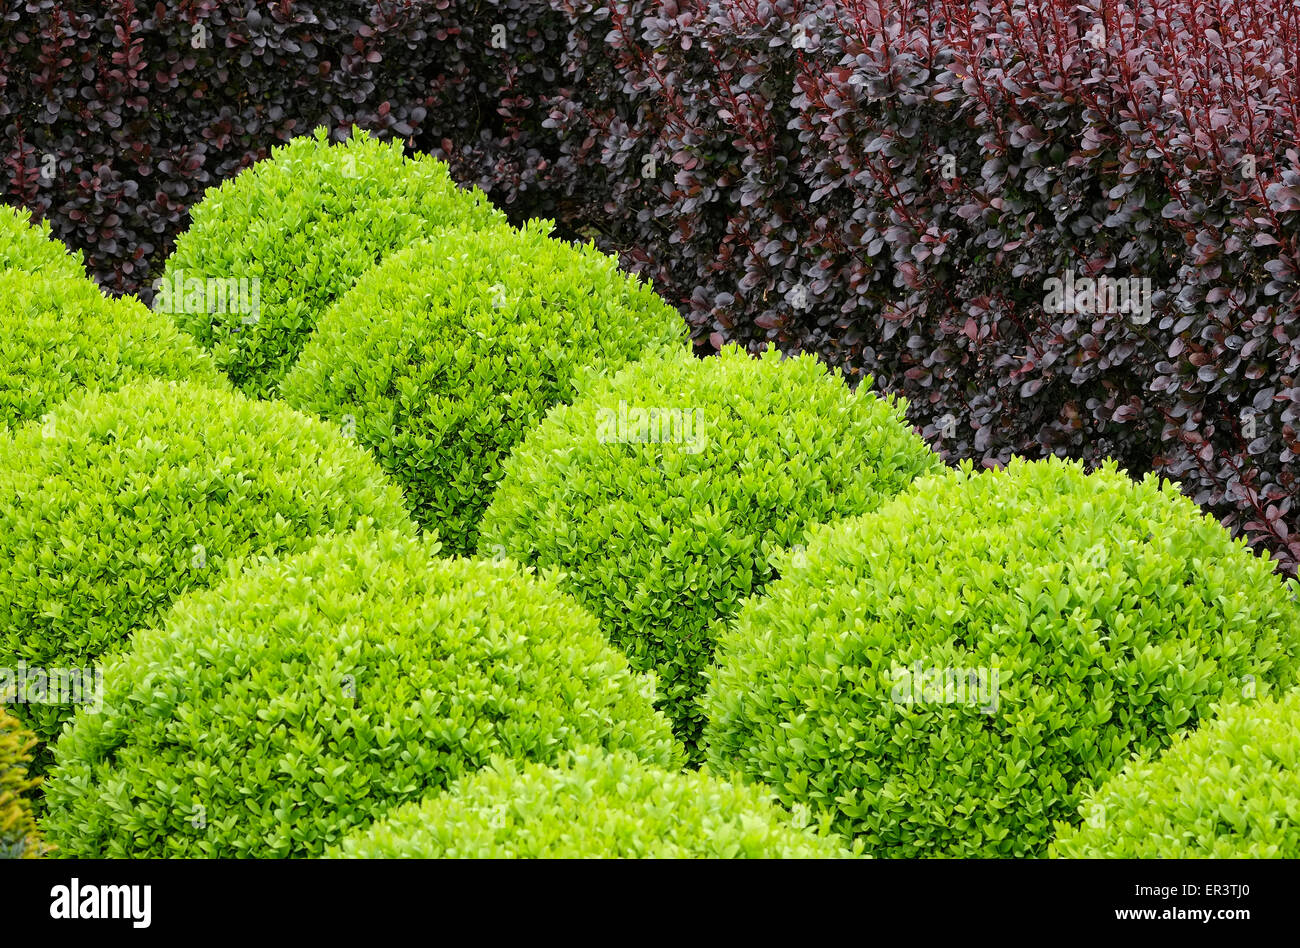 clipped yew stockfotos clipped yew bilder alamy. Black Bedroom Furniture Sets. Home Design Ideas